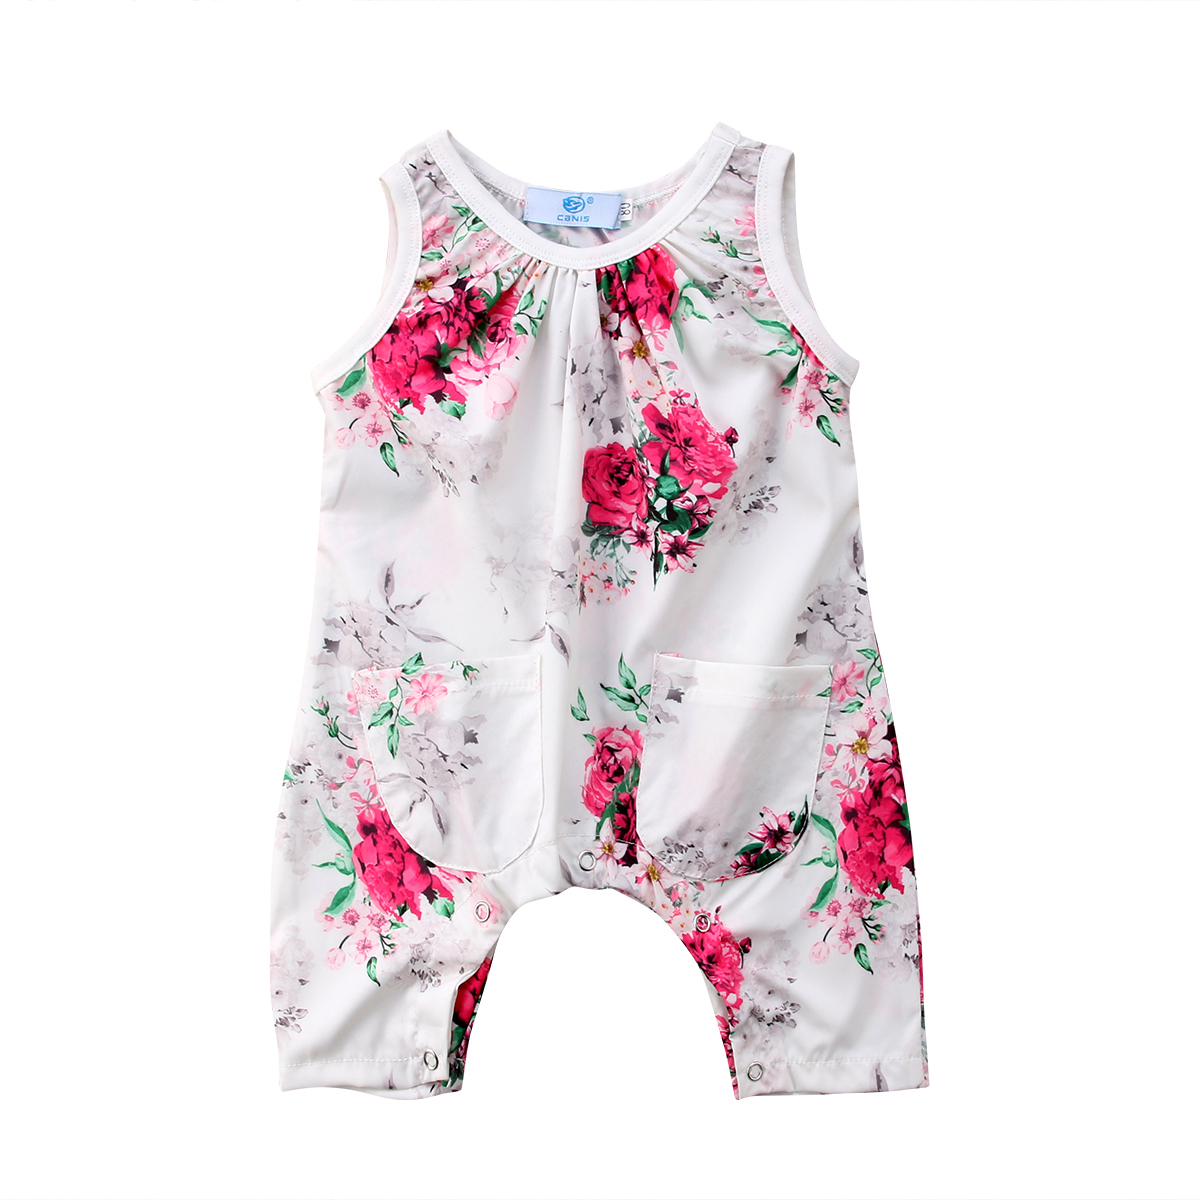 Stylish Sleeveless Toddler Baby Girls Summer Floral White Cotton Romper Jumpsuit Playsuit Clothes 0-3T